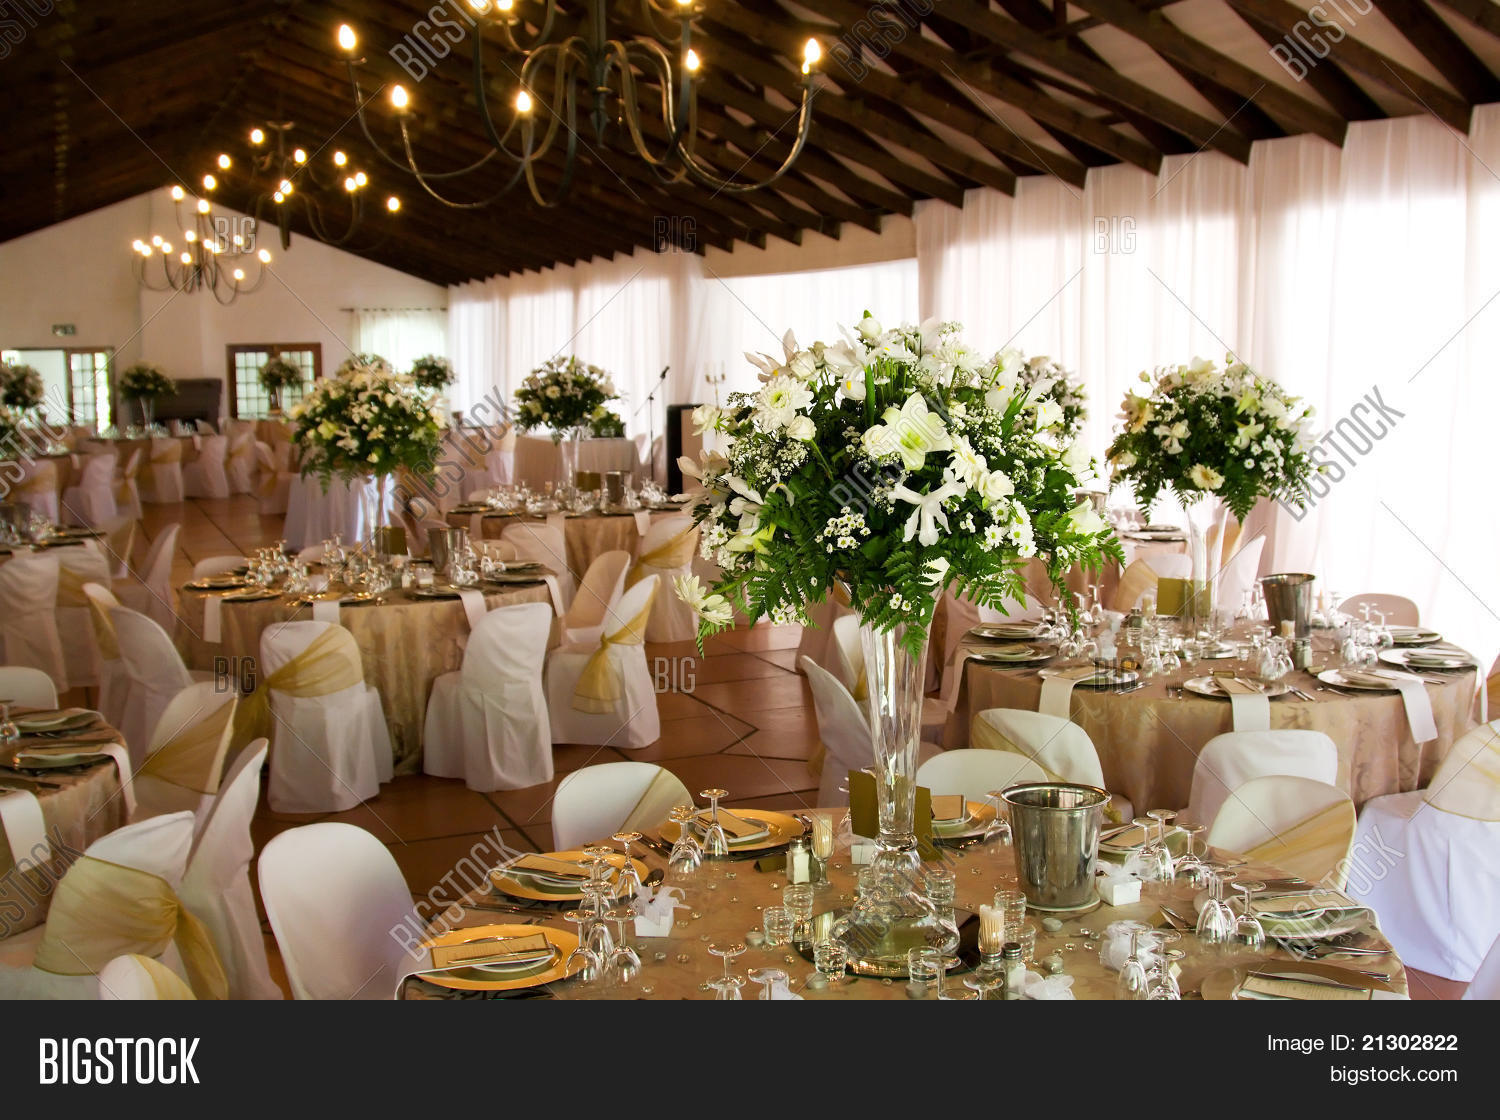 Indoors Wedding Image Photo Free Trial Bigstock